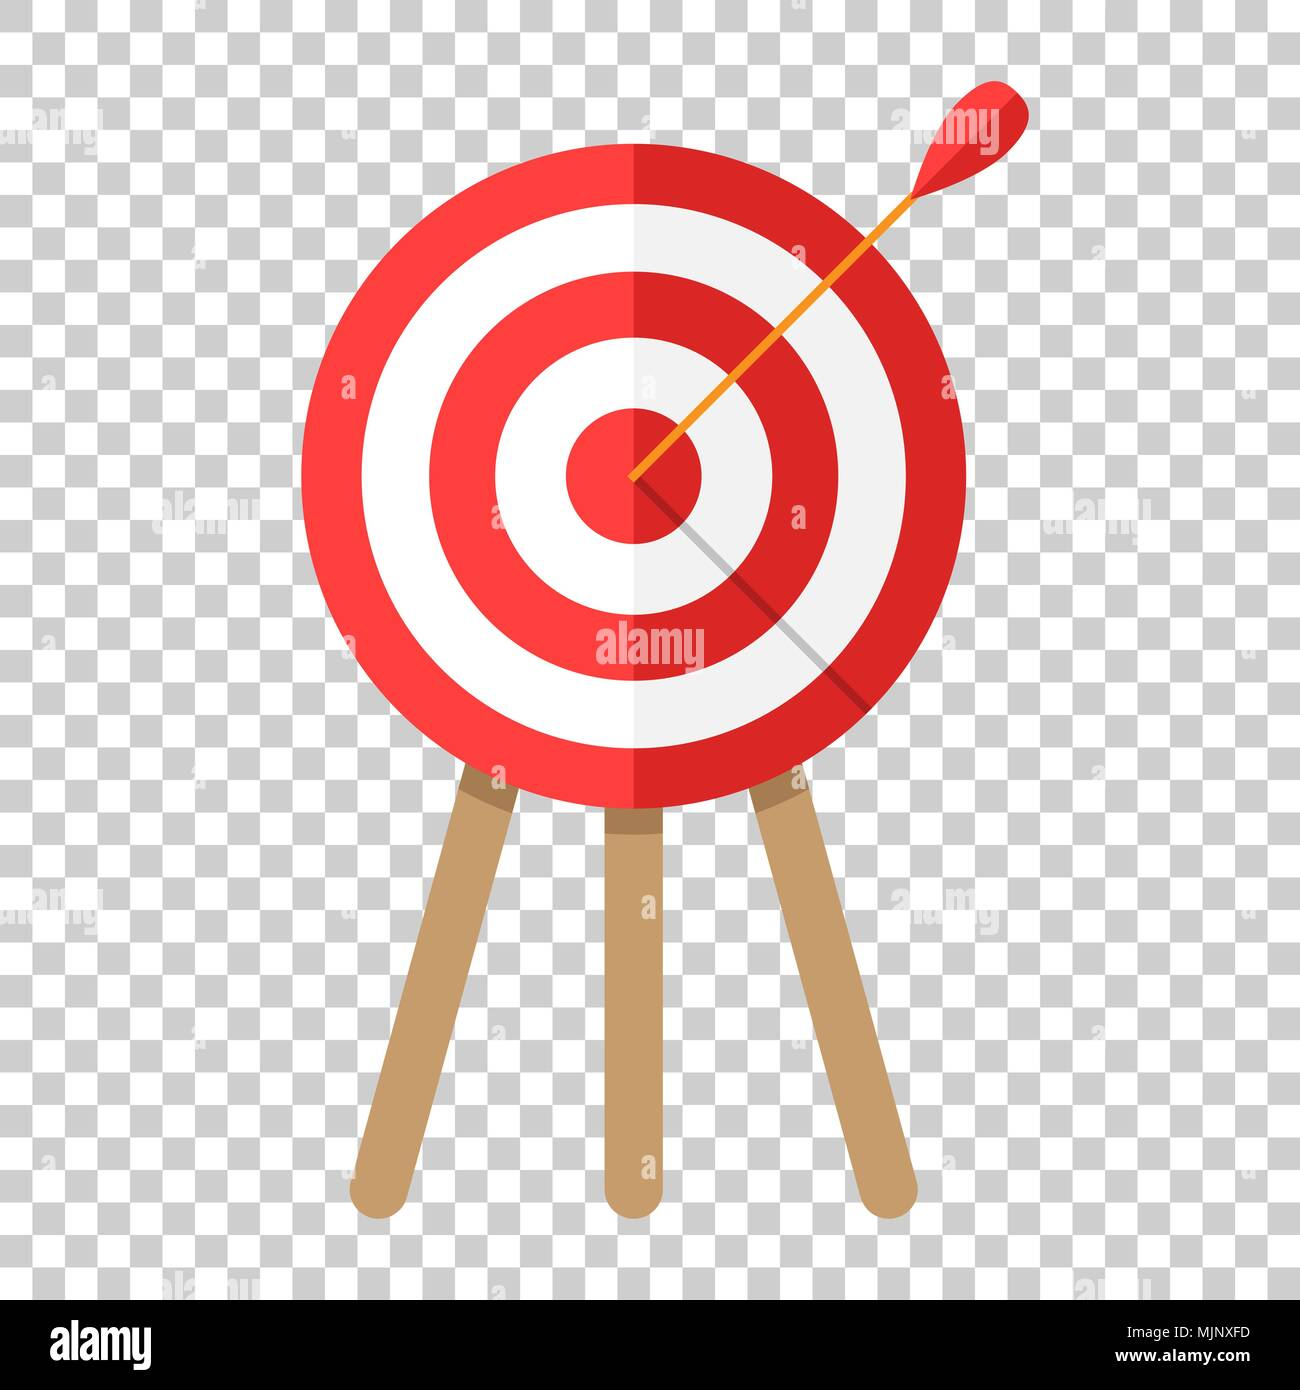 Target Aim Vector Icon In Flat Style Darts Game Illustration On Isolated Transparent Background Dartboard Sport Concept